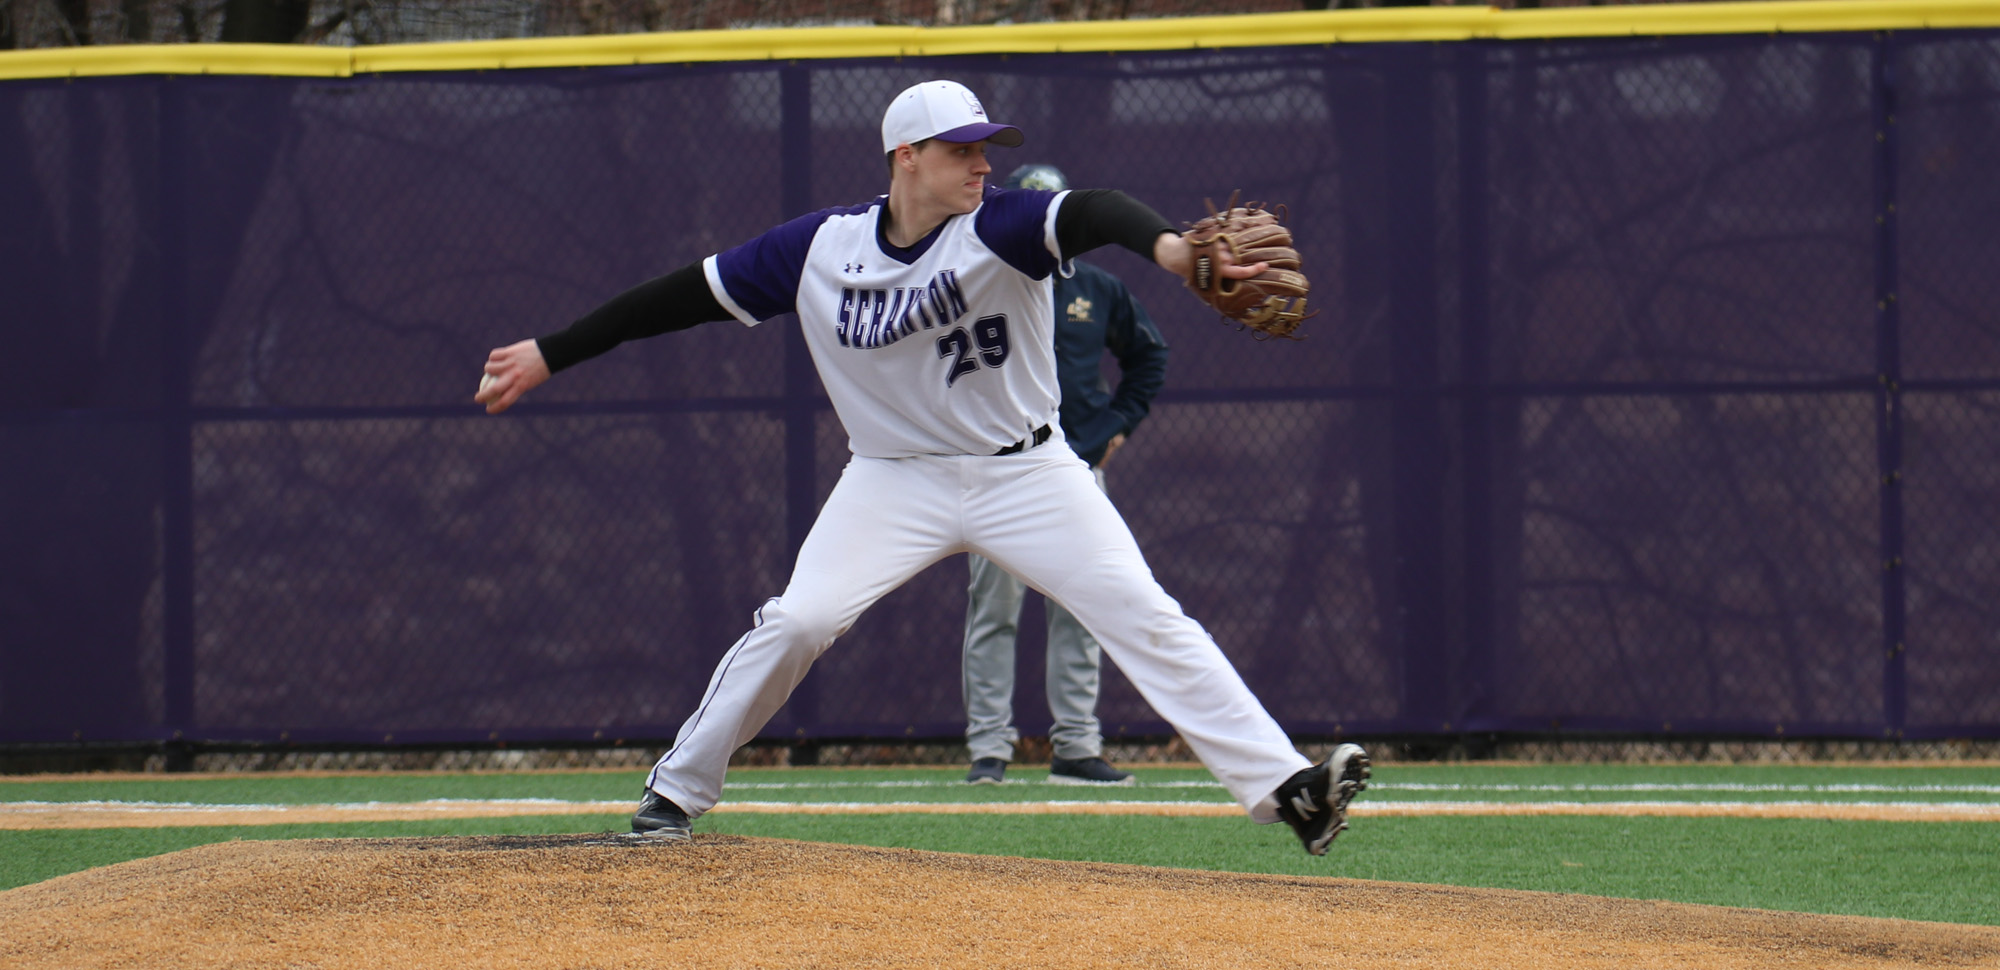 Freshman Josh Lydon nailed down his second save of the season to secure Scranton's win over Catholic on Sunday after the Royals rallied with three runs in the top of the ninth to win 7-6.